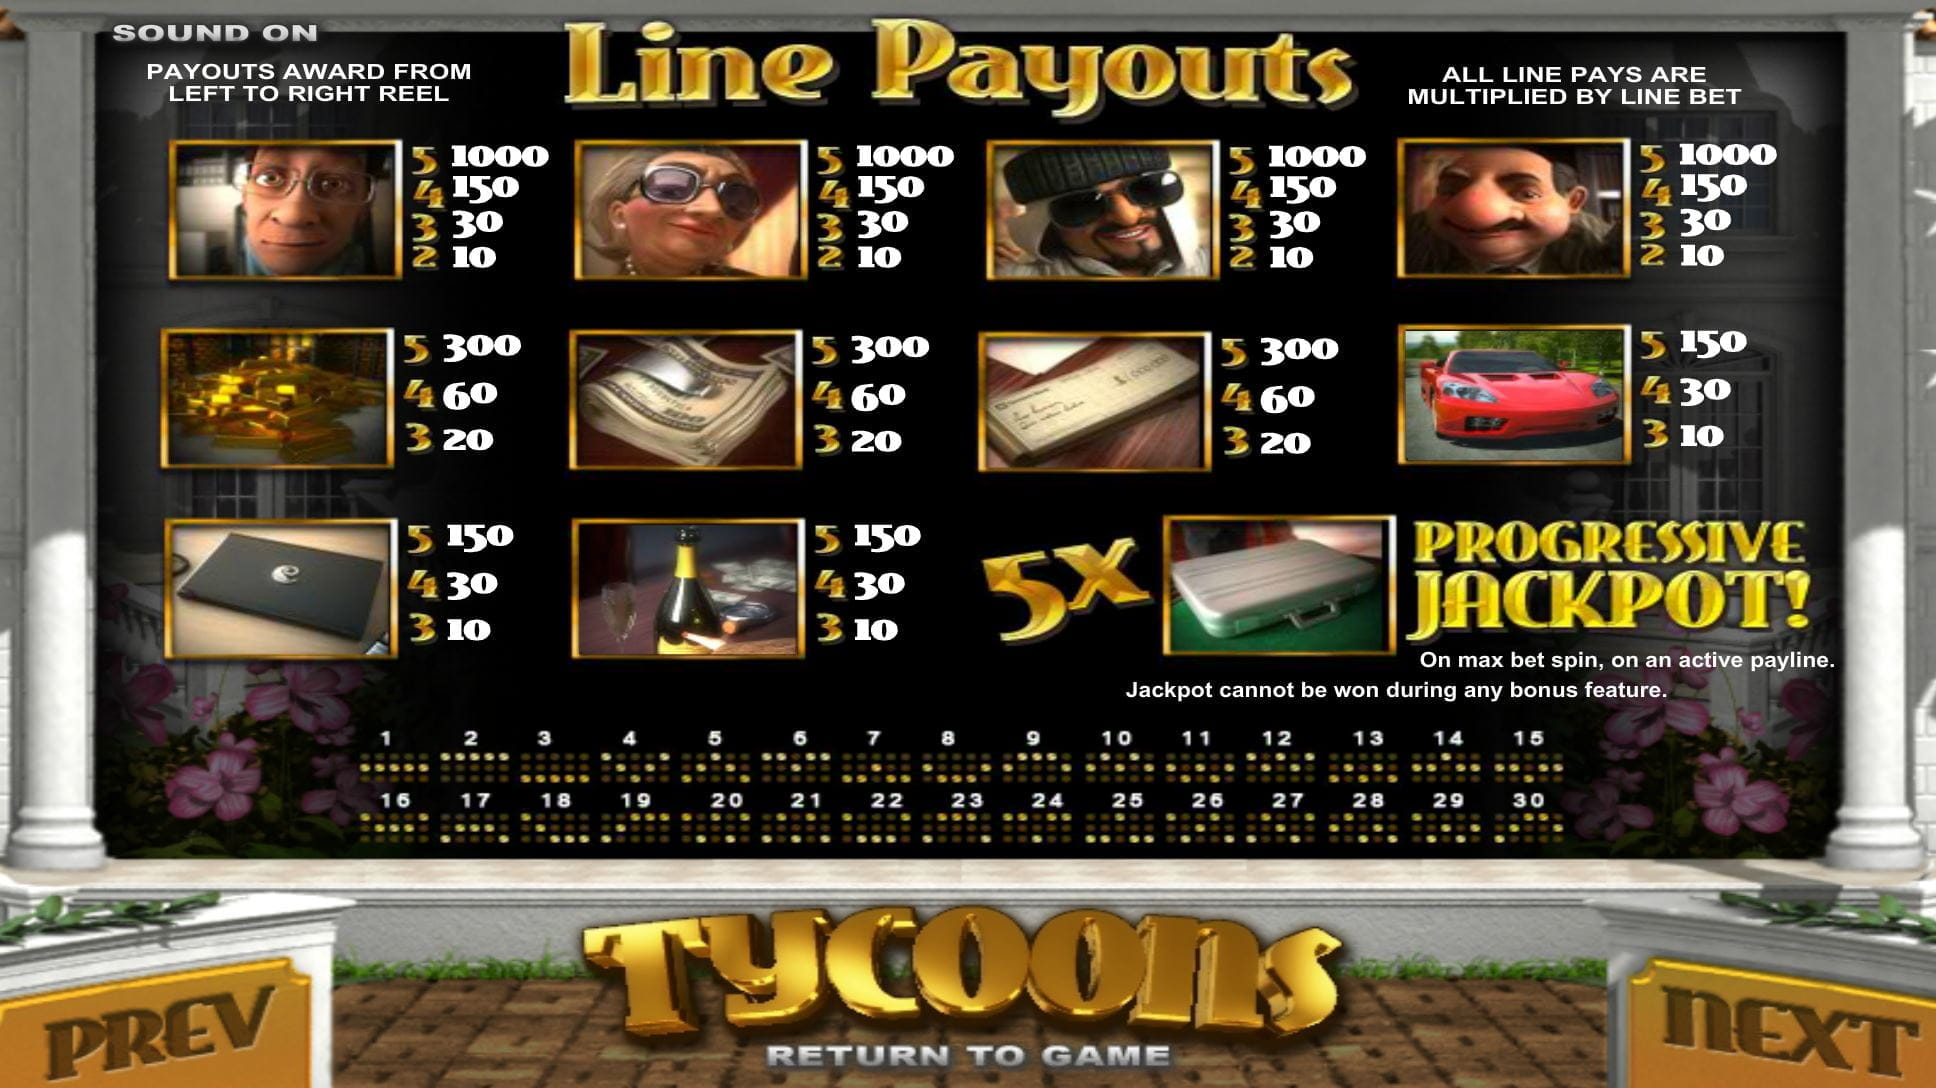 Tycoons Paytable